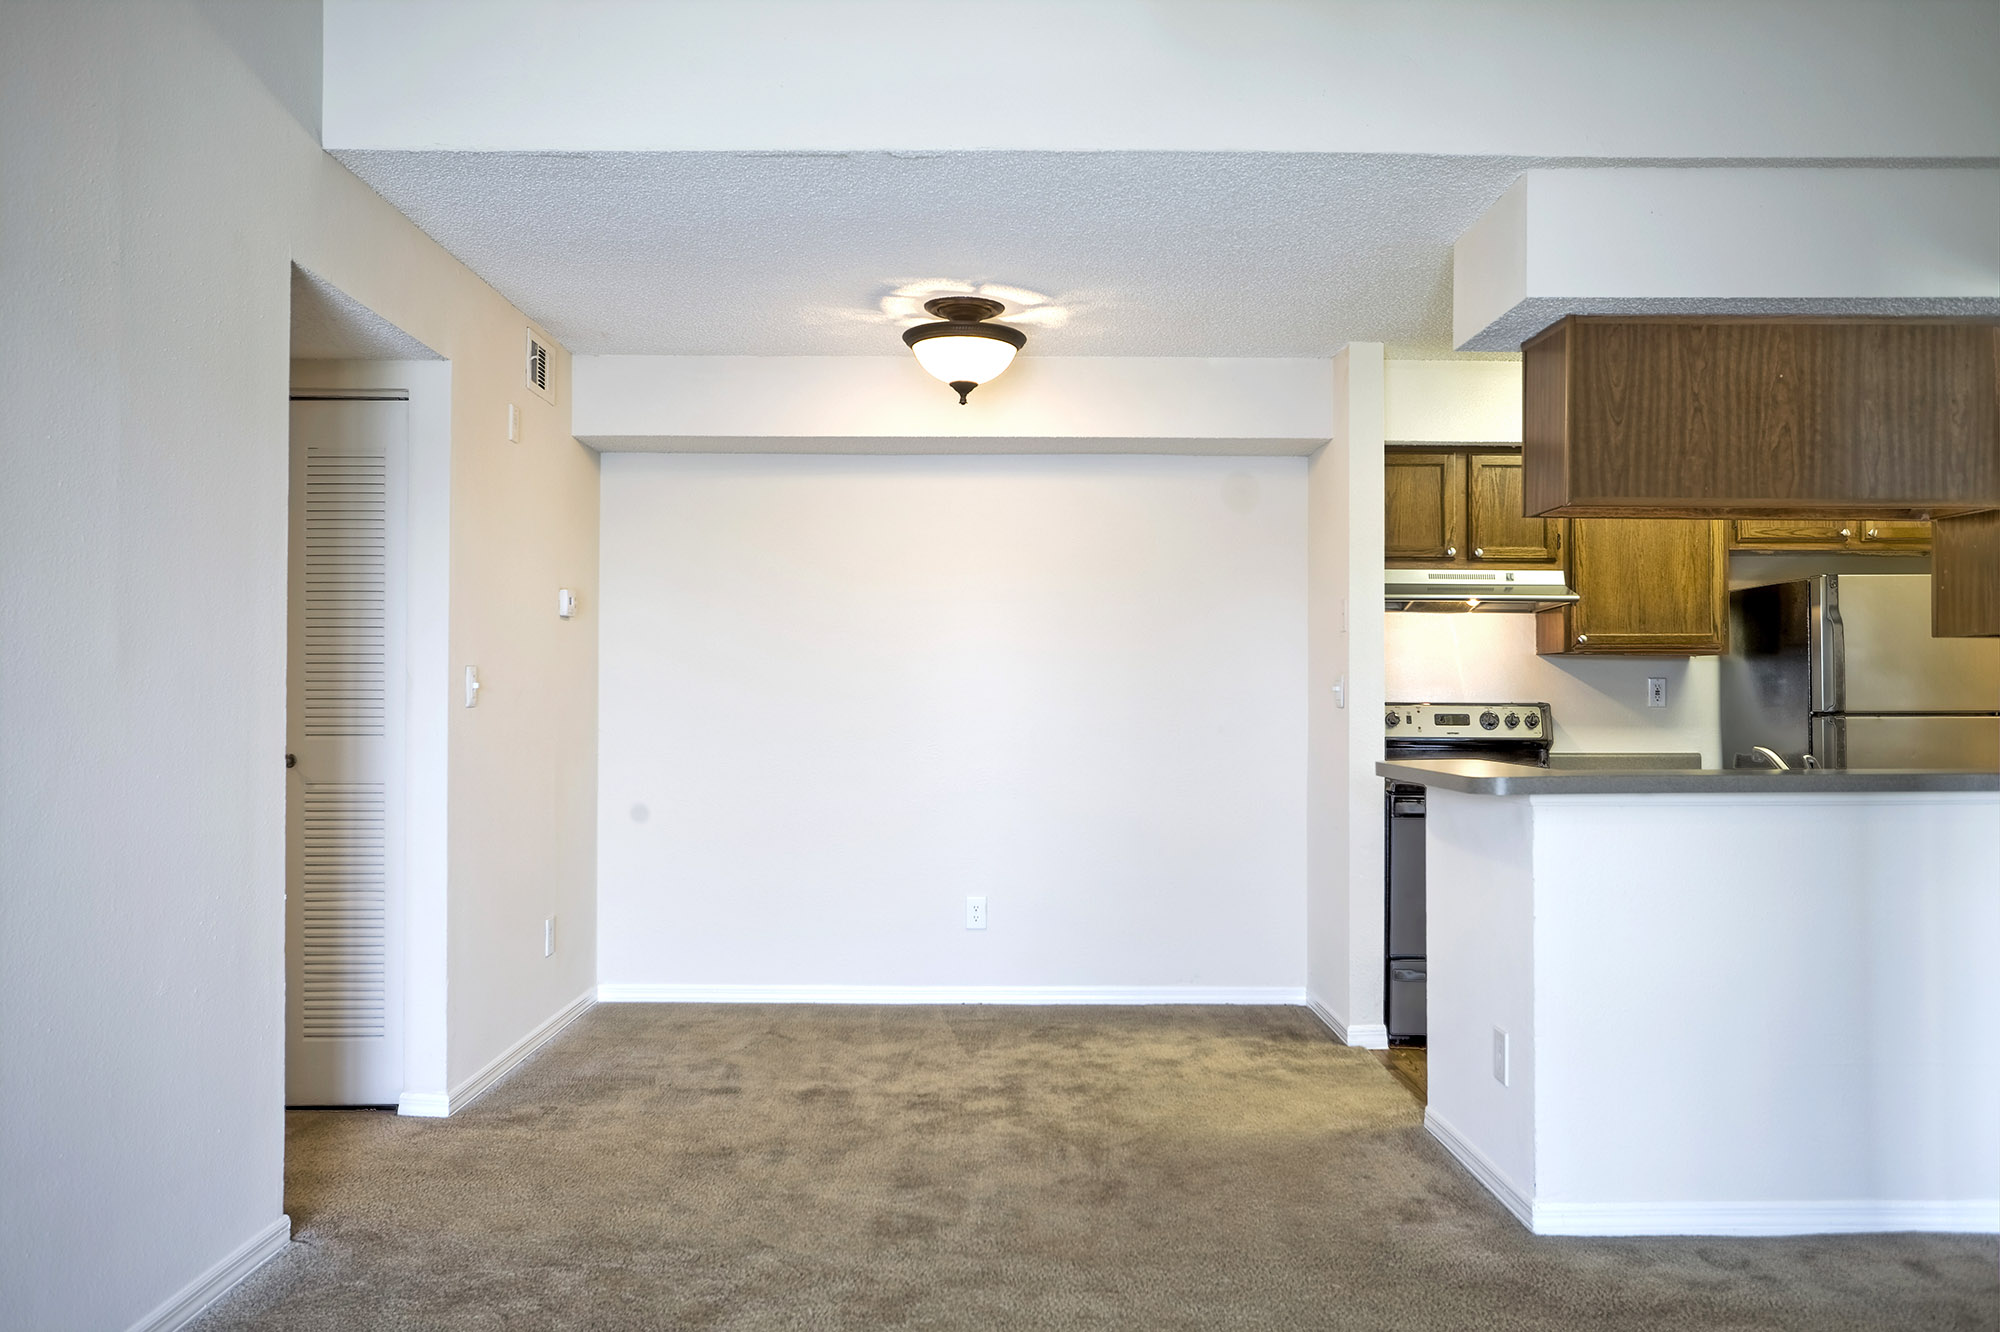 CharlestonLandings-Rental-Apartment-Brandon-Tampa-Florida-Bedrooms-Kitchen2.jpg